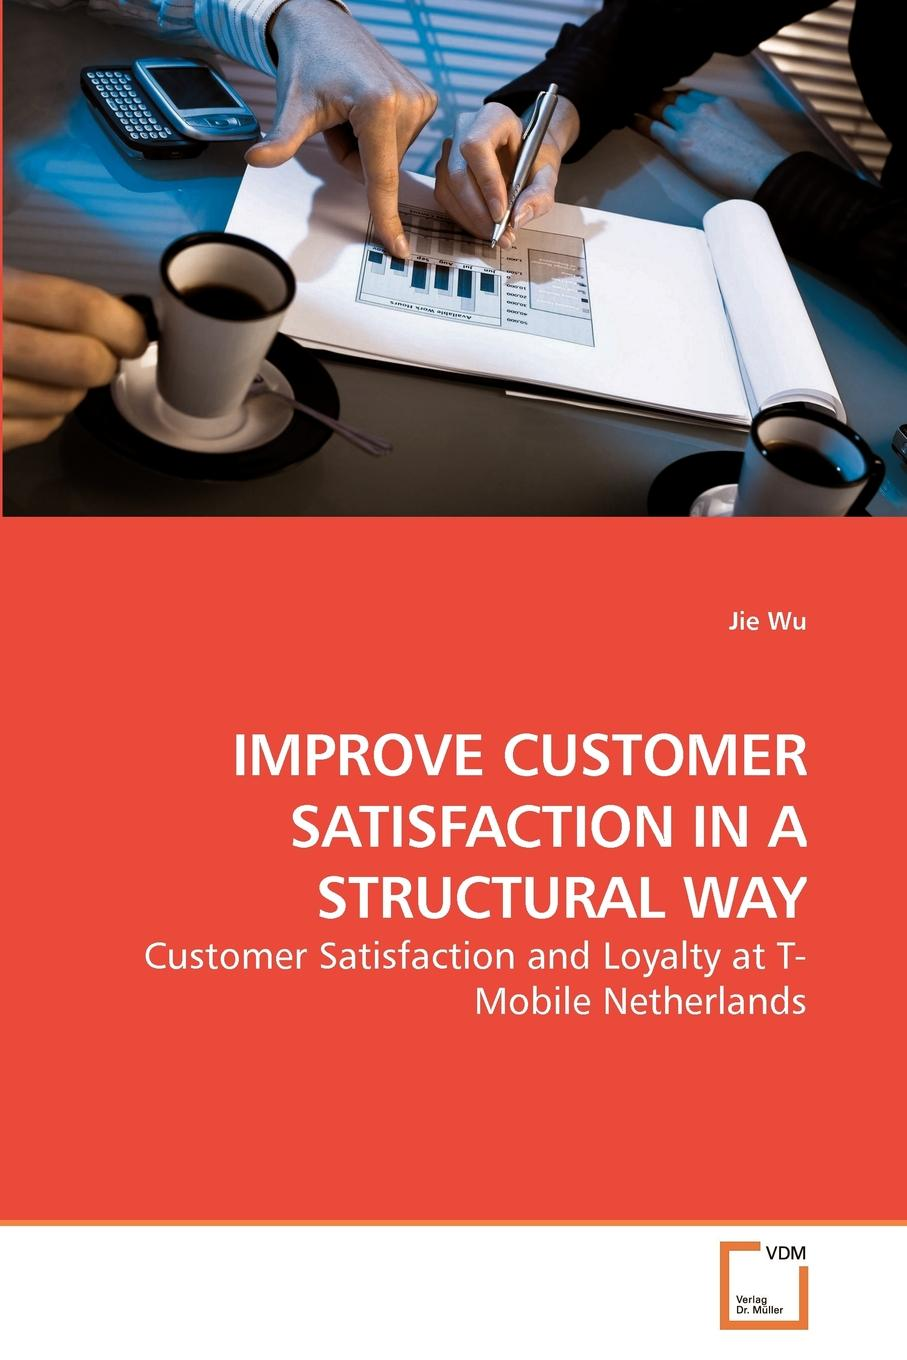 Jie Wu IMPROVE CUSTOMER SATISFACTION IN A STRUCTURAL WAY andrew frawley igniting customer connections fire up your company s growth by multiplying customer experience and engagement